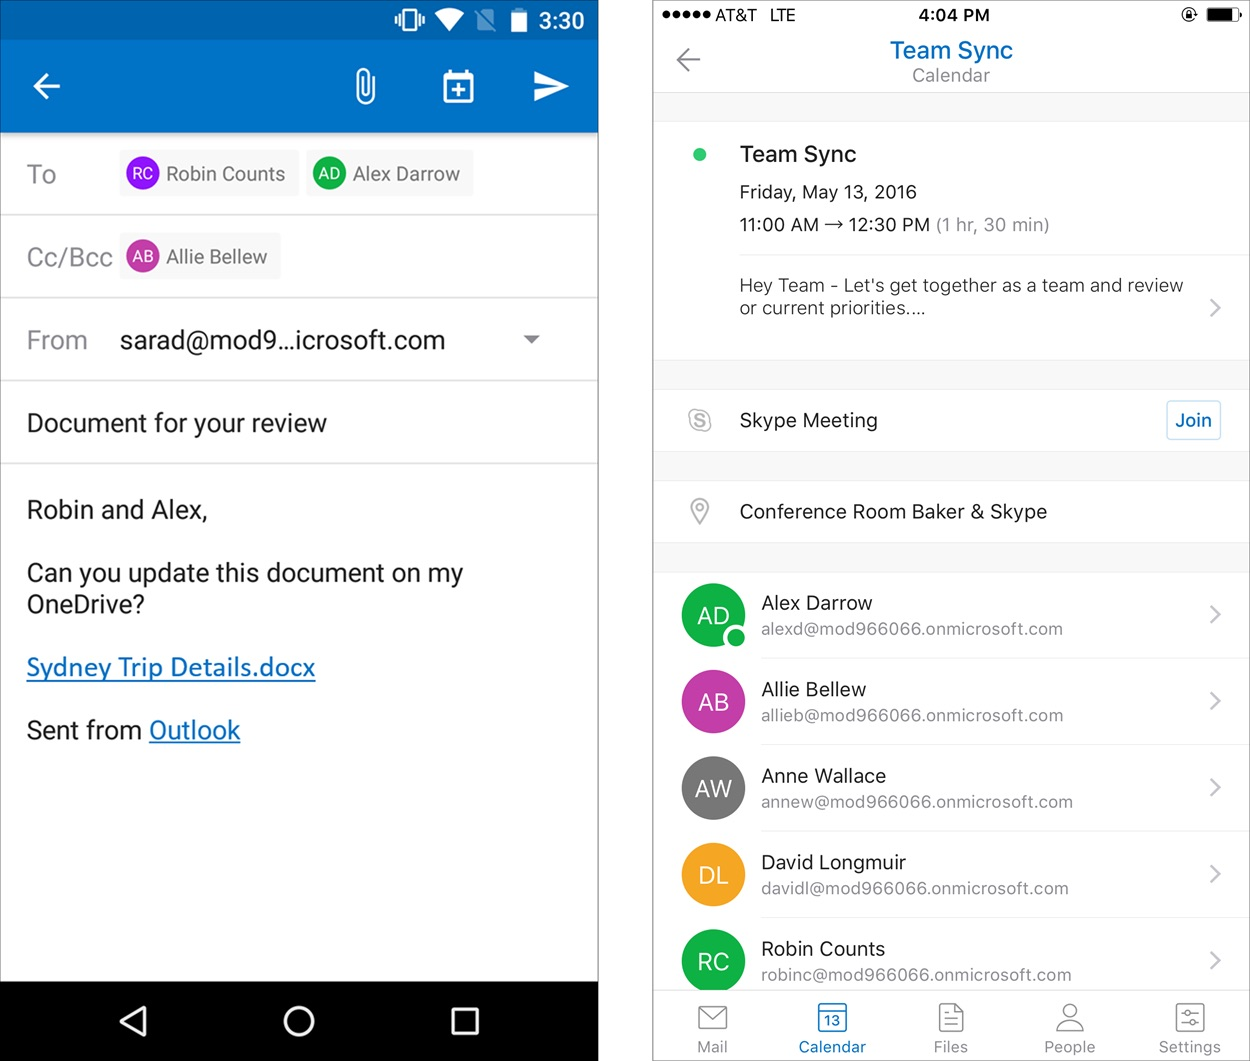 Outlook on iOS and Android devices now lets you insert links to OneDrive for Business files in email (left), and in next week's update, join Skype Meetings in one click (right).